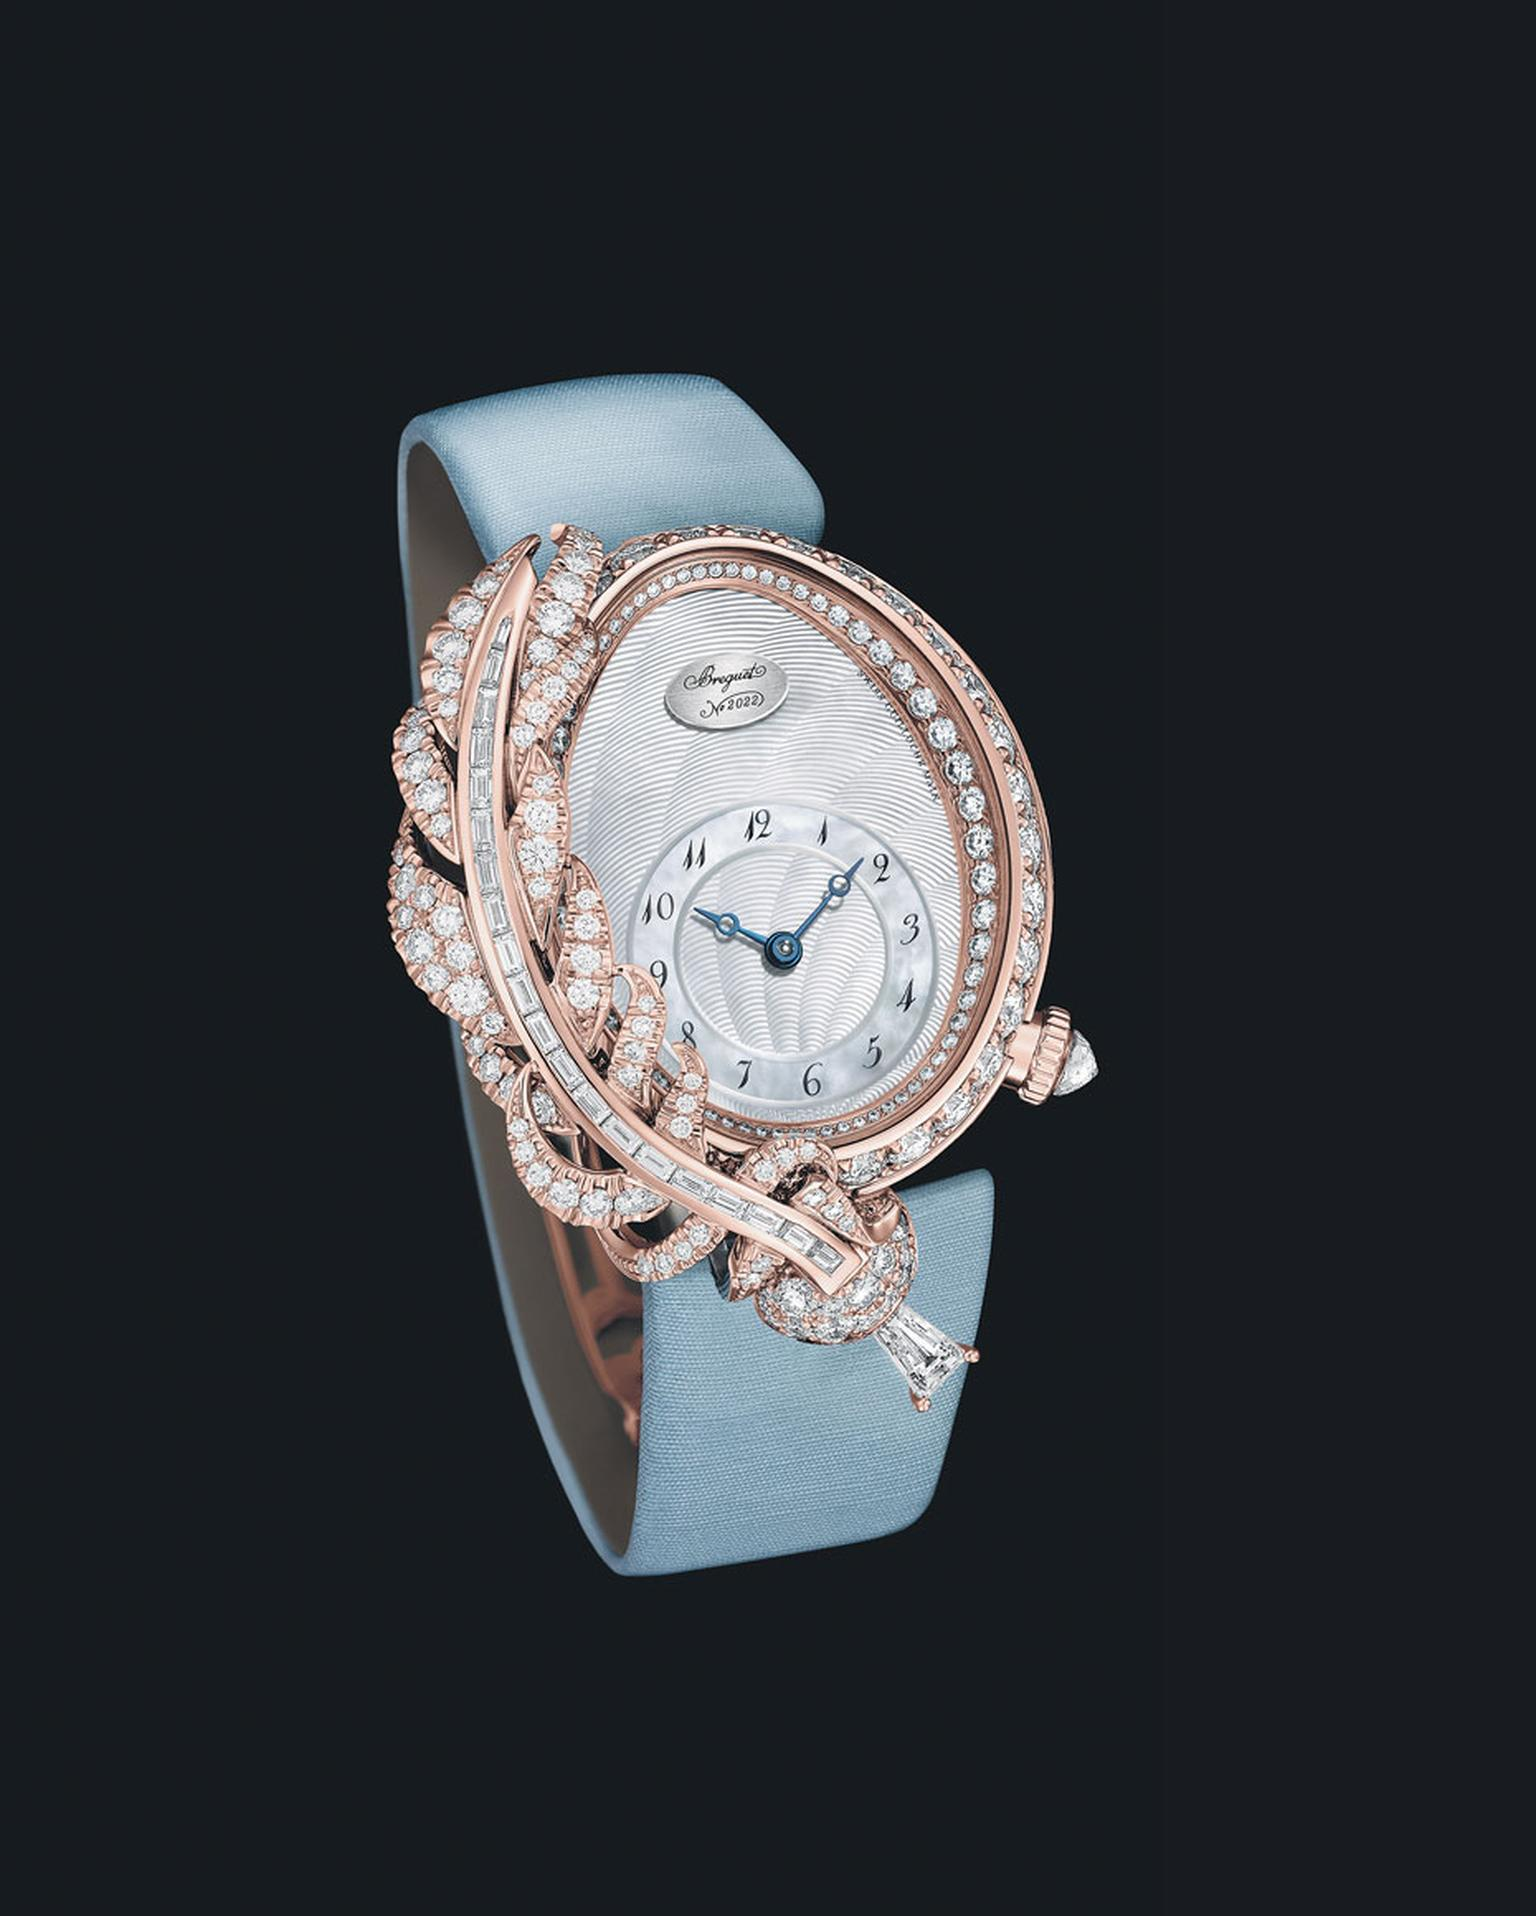 Baselworld-2015-high-jewellery-watches_Breguet_Rêve-de-Plume.jpg